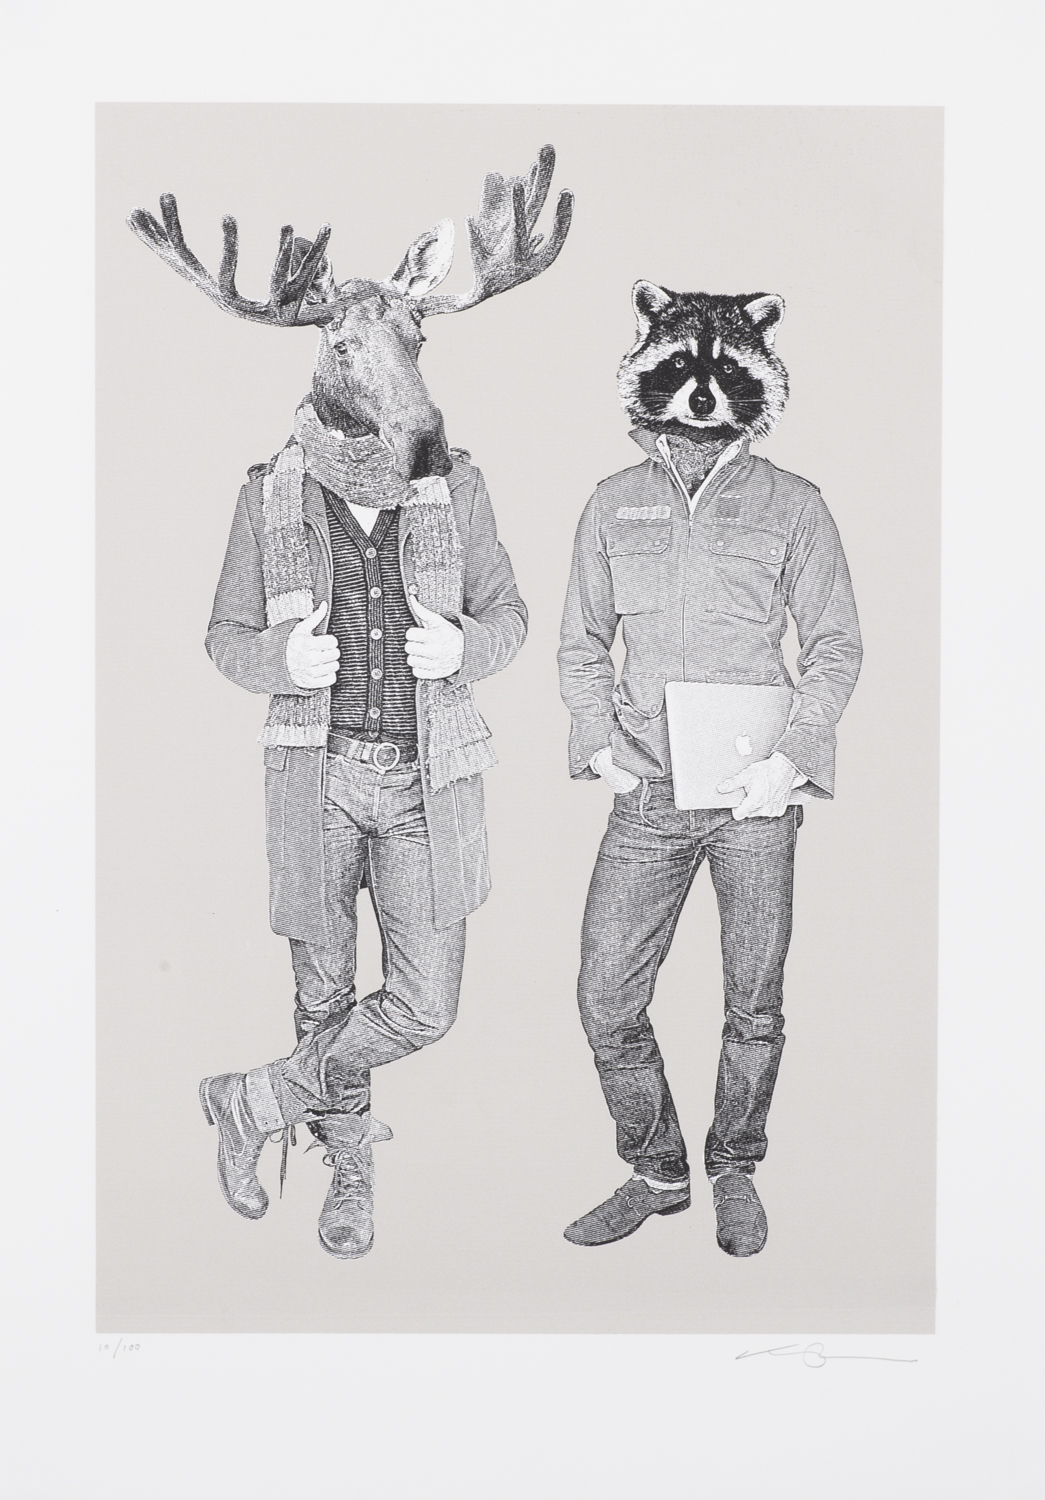 The Moose & Raccoon B&W